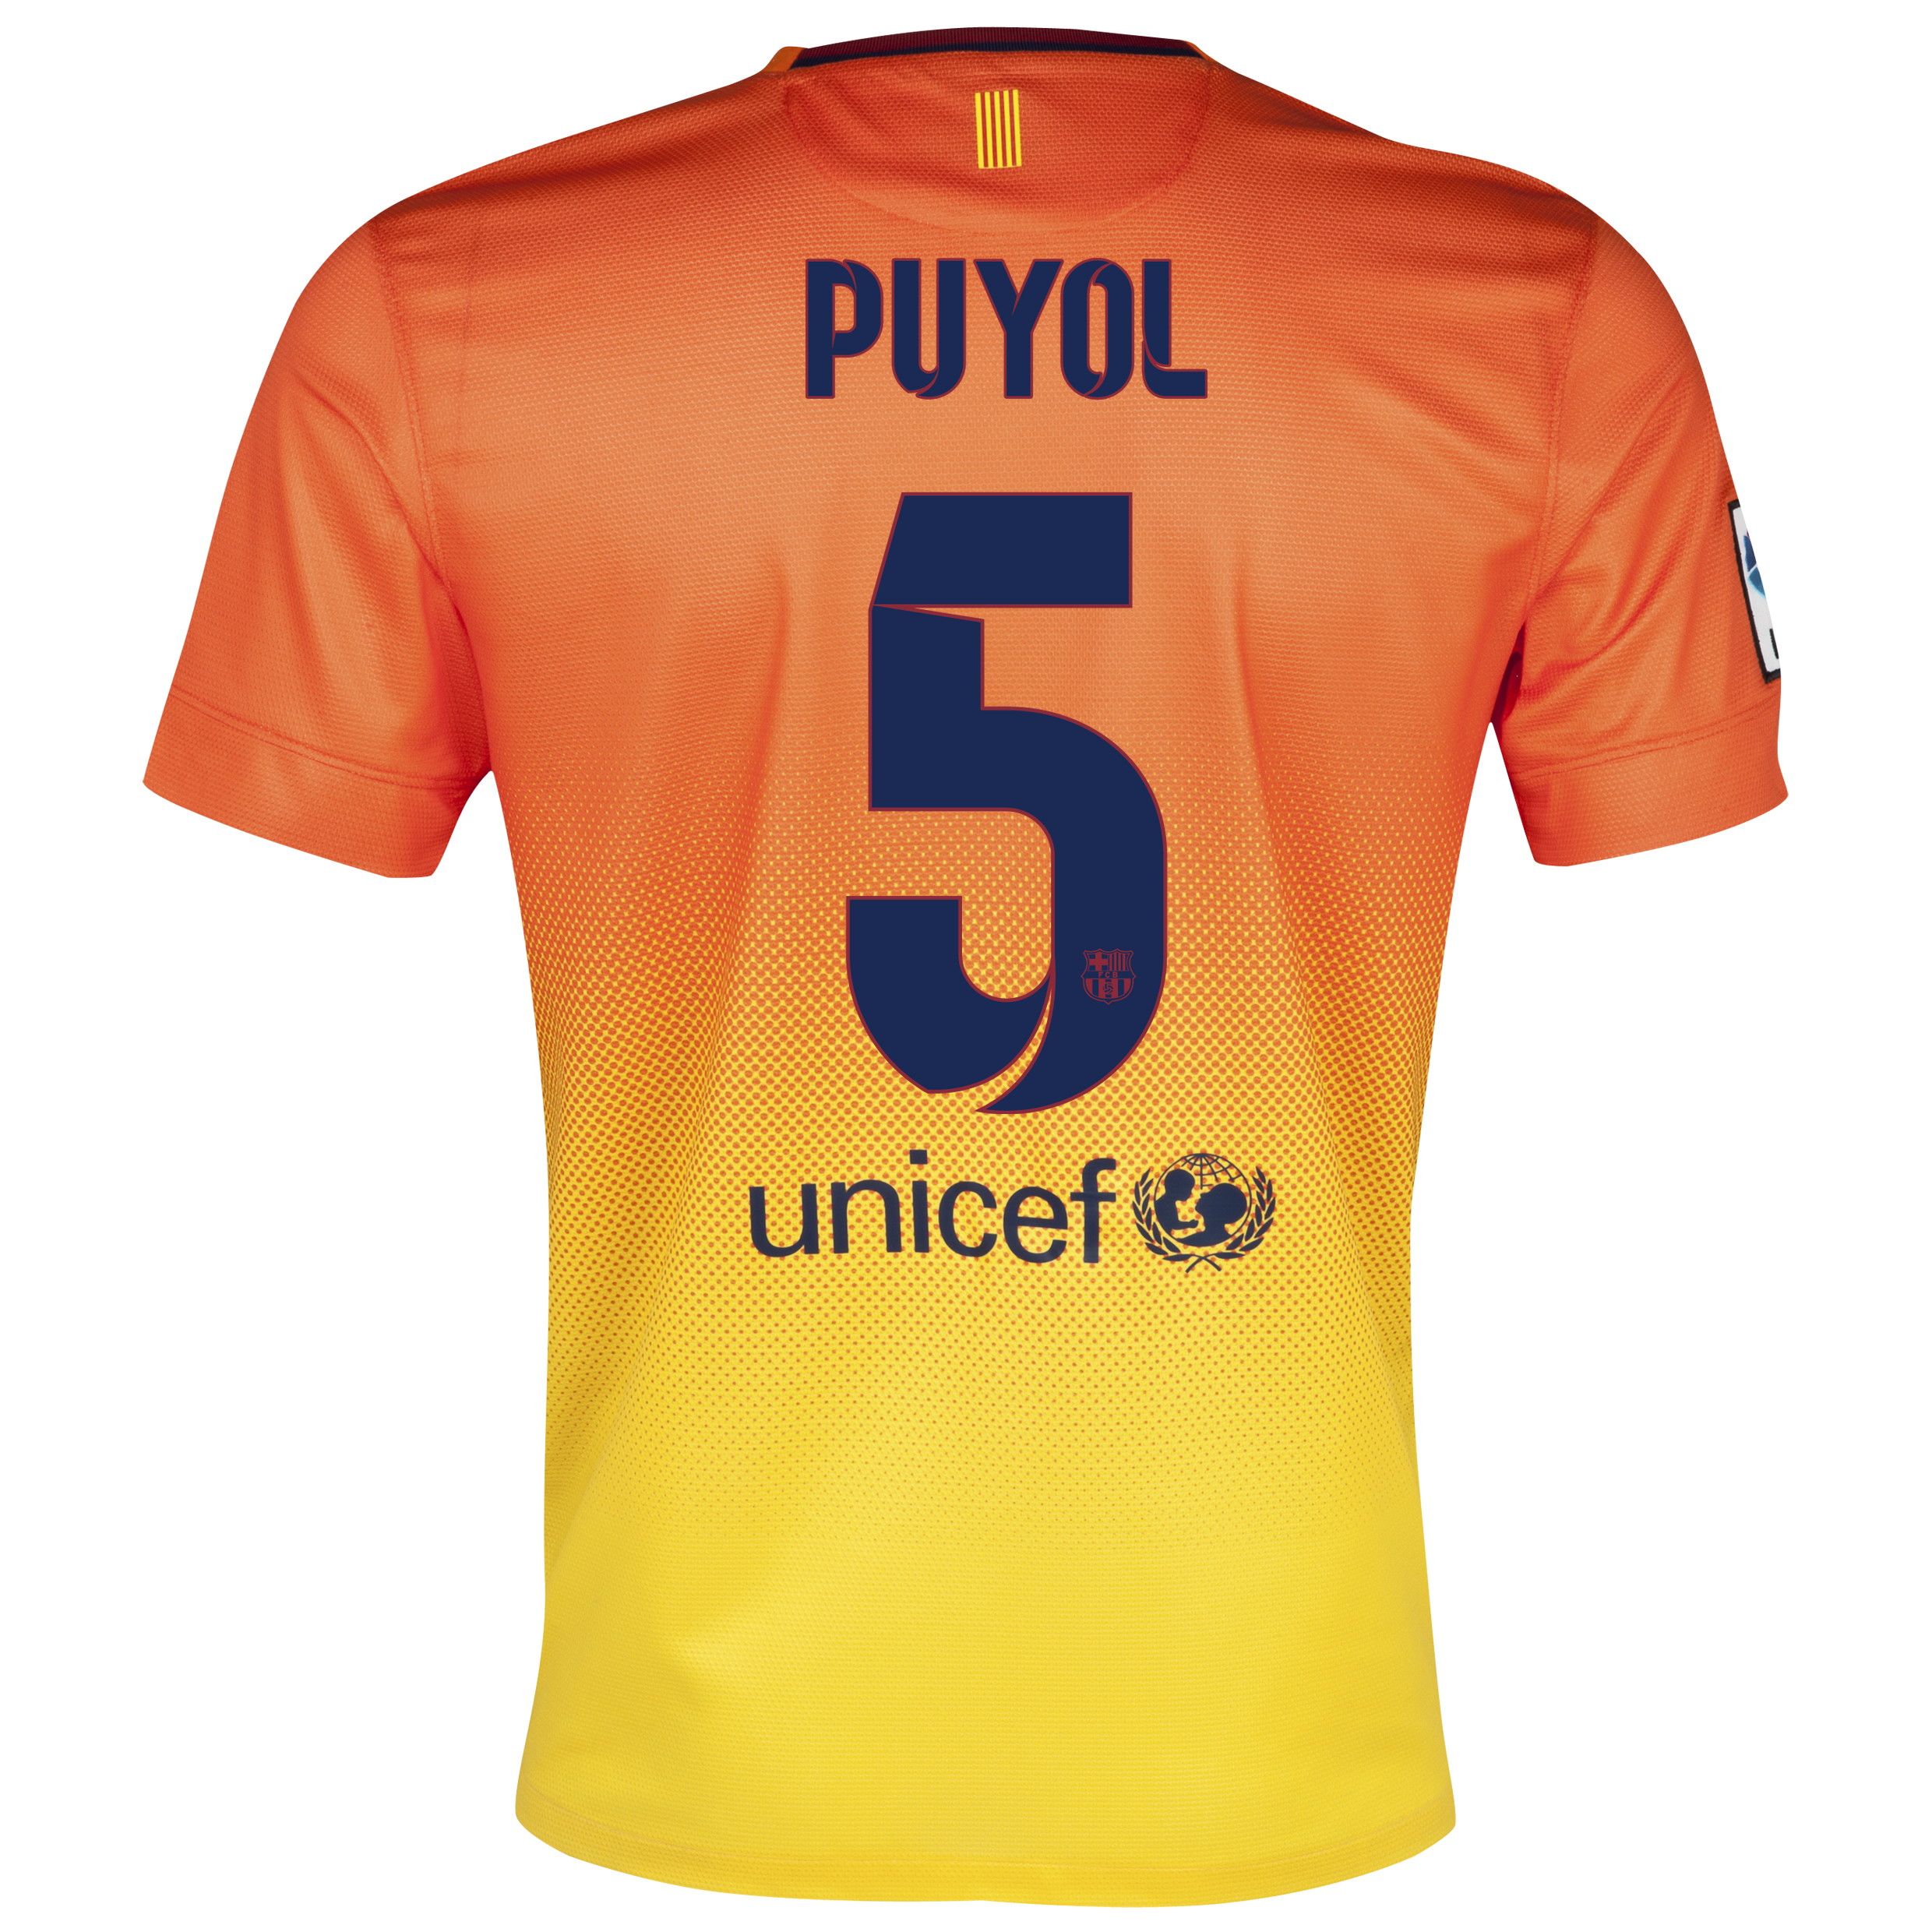 Barcelona Away Shirt 2012/13 with Puyol 5 printing